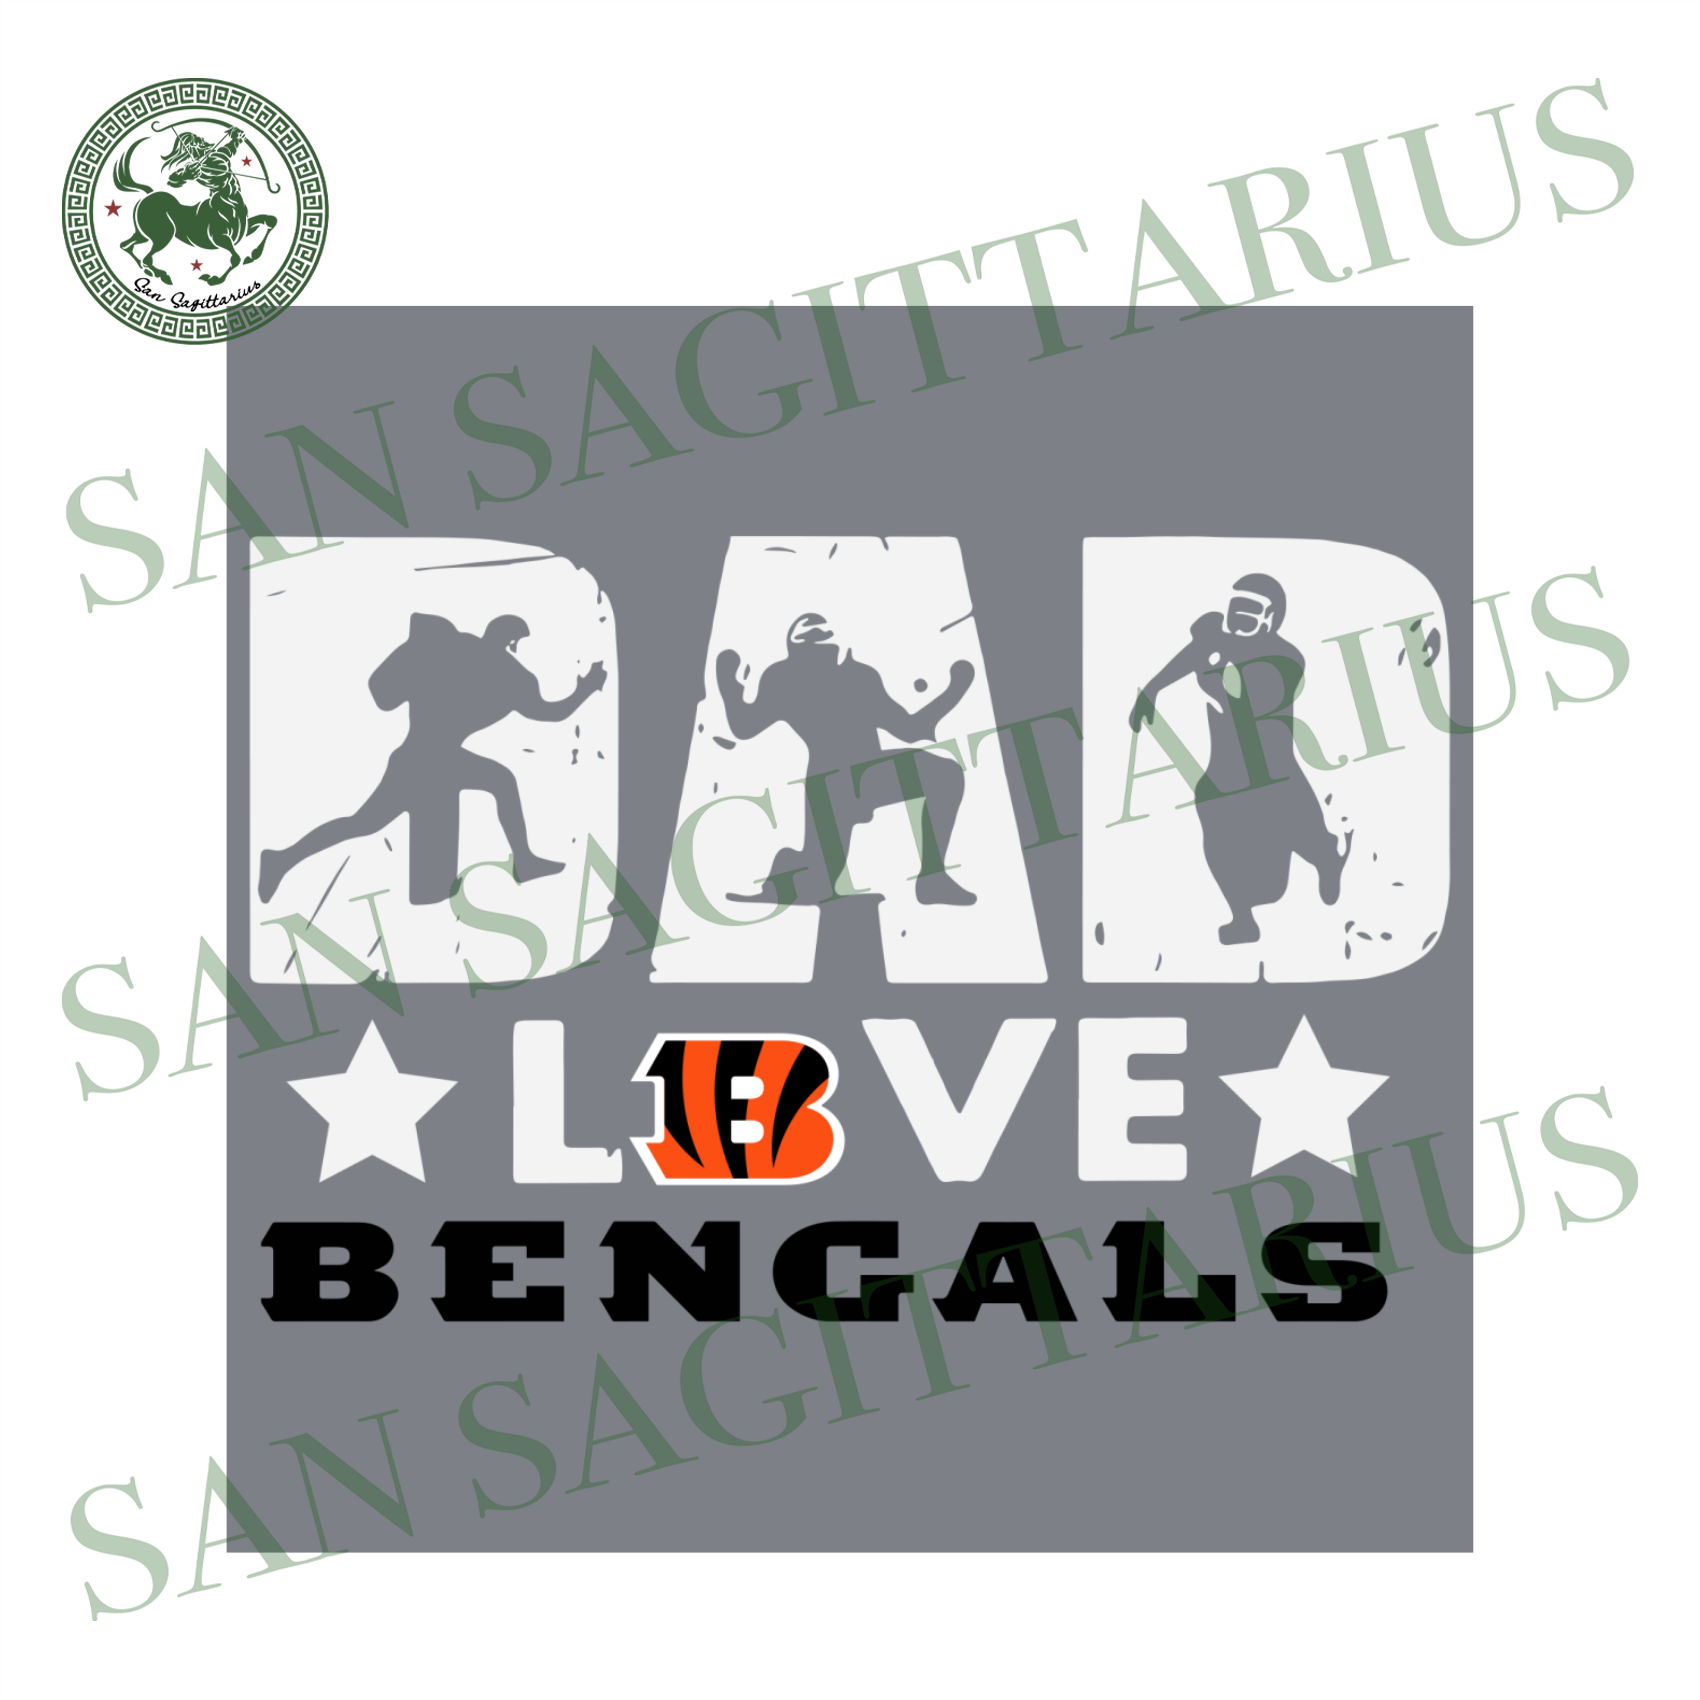 Dad Love Bengals, Sport Svg, Father's Day, Cincinnati Bengals Svg, Happy Father's Day, Cincinnati Bengals Football, Dad Shirts, Dad Lover, Cincinnati Bengals Shirt, Cincinnati Bengals Footbal